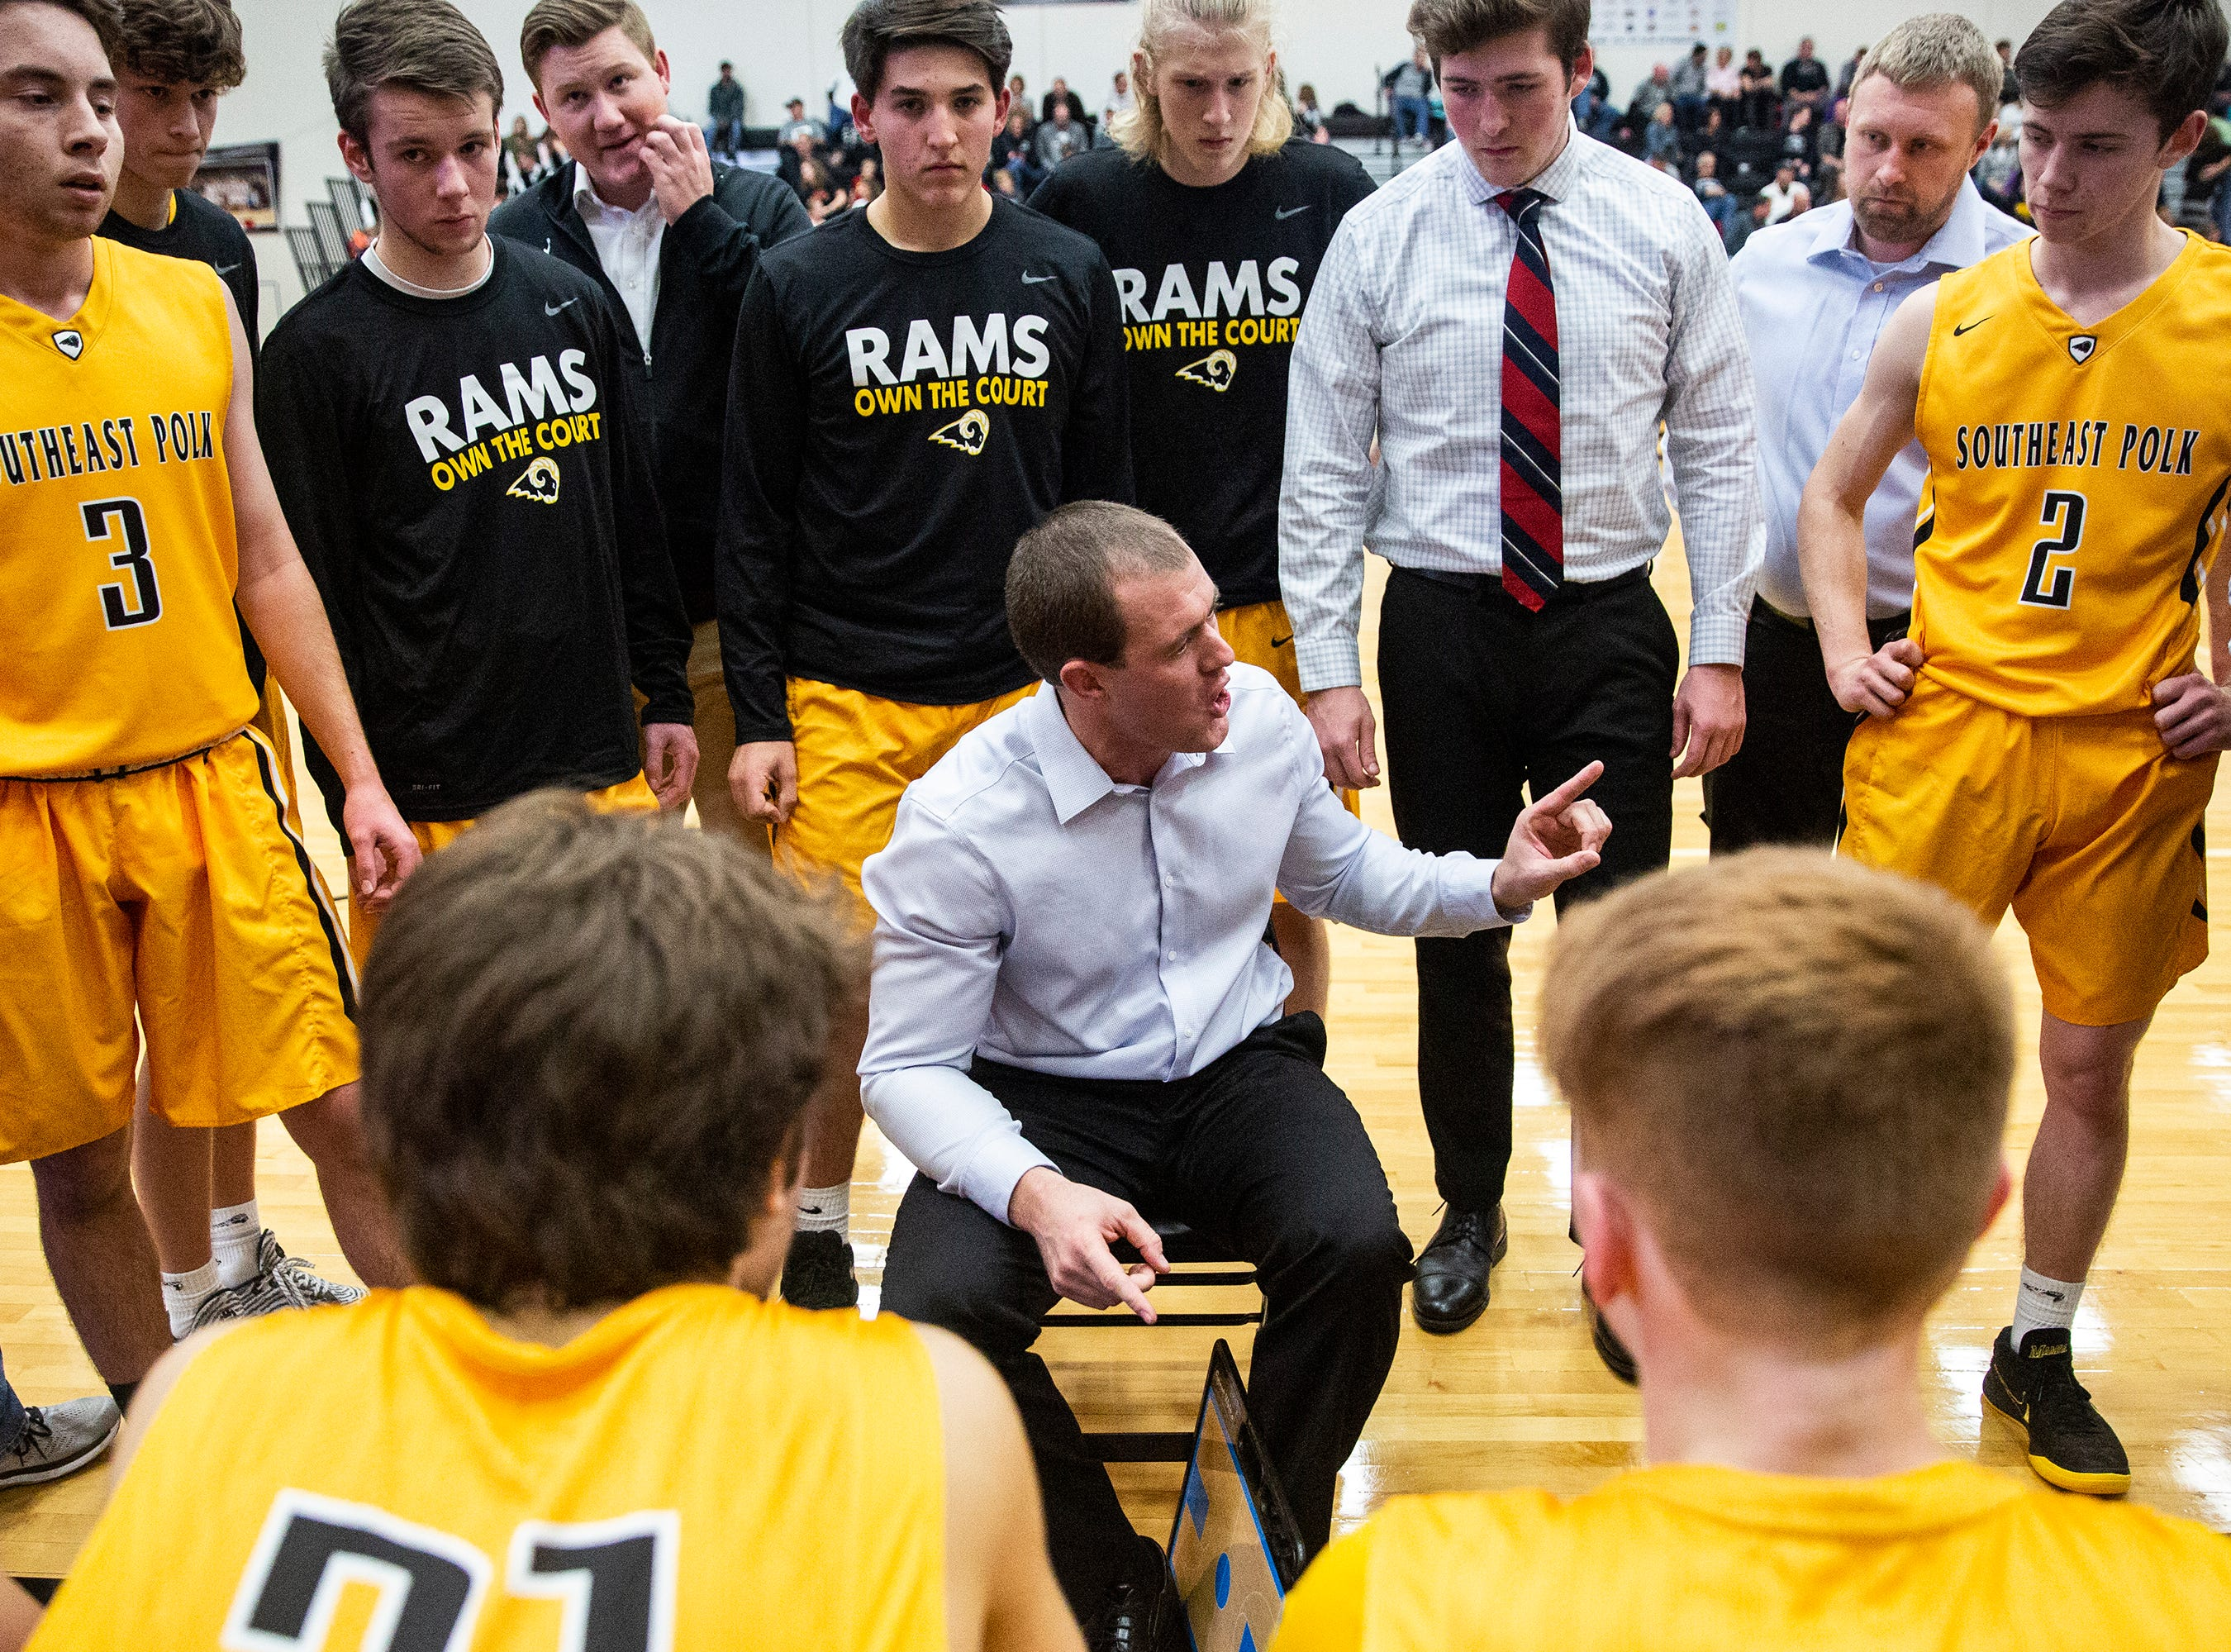 SEP Coach Alan Jenkins talks to his team during a time out during the Southeast Polk vs. Ankeny Centennial boy's basketball game on Tuesday, Nov. 27, 2018, at Ankeny Centennial High School.